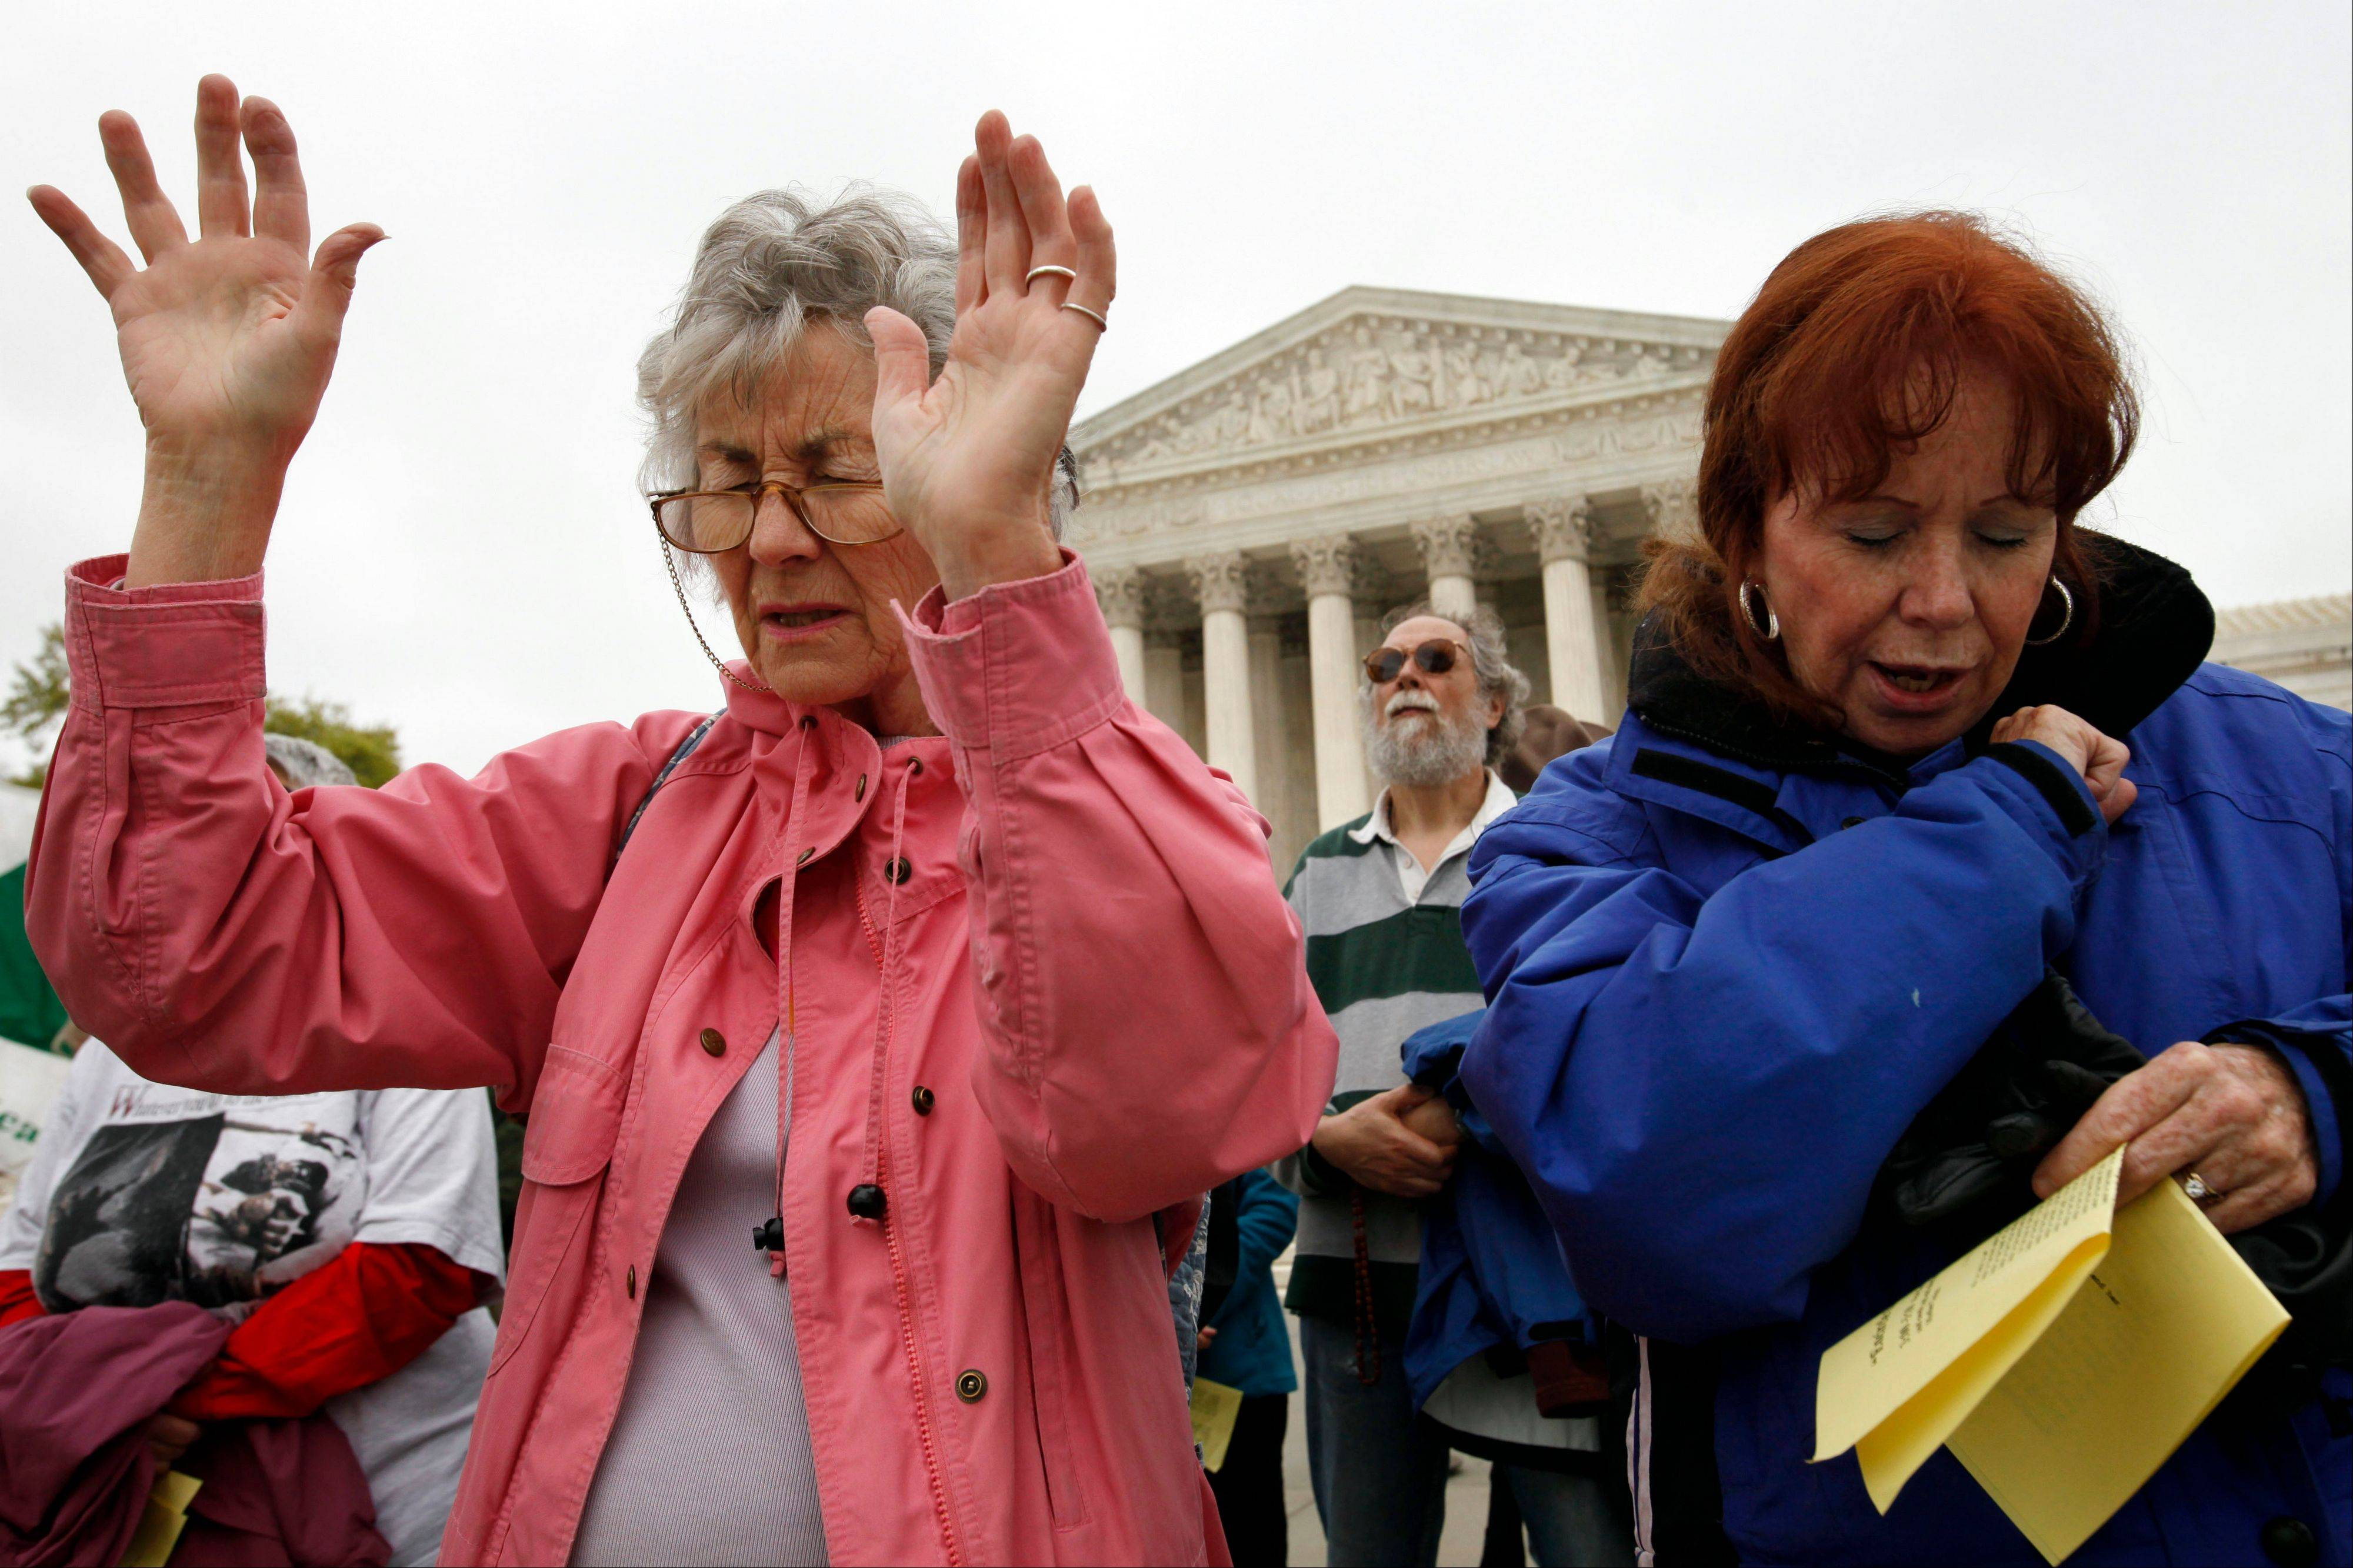 "Joan Schnabel of Annapolis, Md., left, and Marge Groetsch of Front Royal, Va., pray in front of the Supreme Court as part of ""Encircle the Court in Prayer,"" an event led by Christian faith organizations on the eve of the Supreme Court arguments on President Obama's health care legislation, in Washington on Sunday."